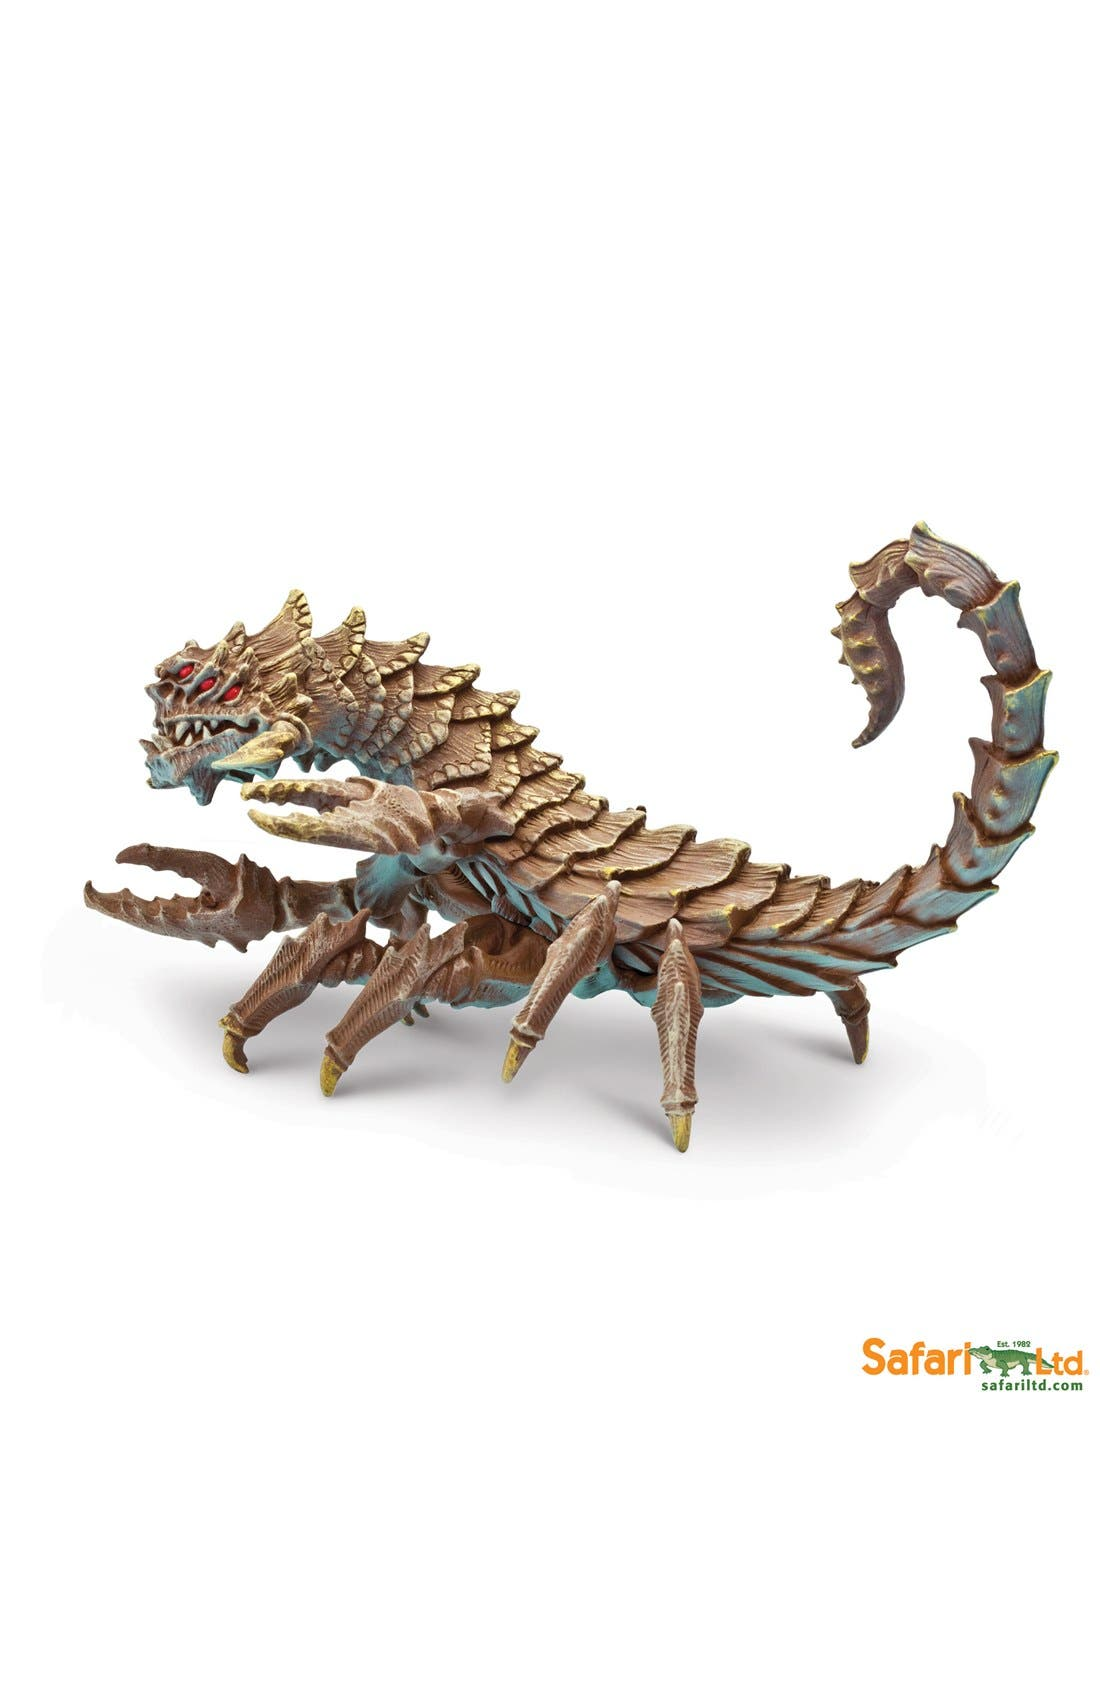 Safari Ltd. Desert Dragon Figurine